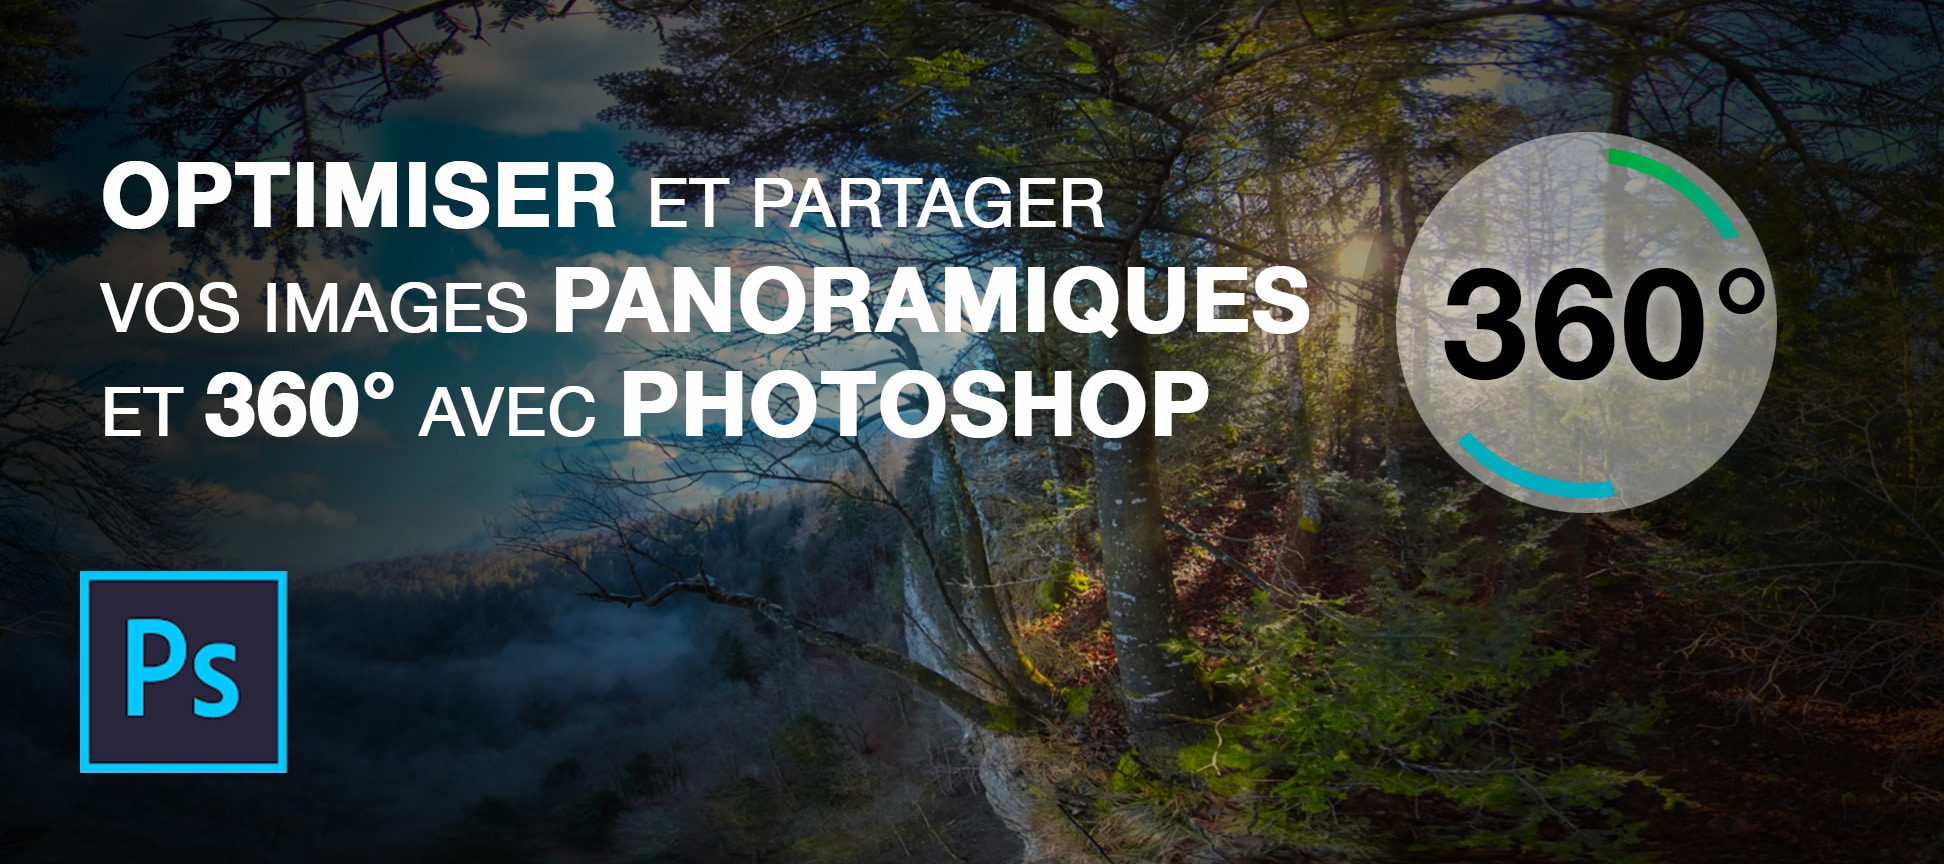 optimiser partager image 360 adobe photoshop